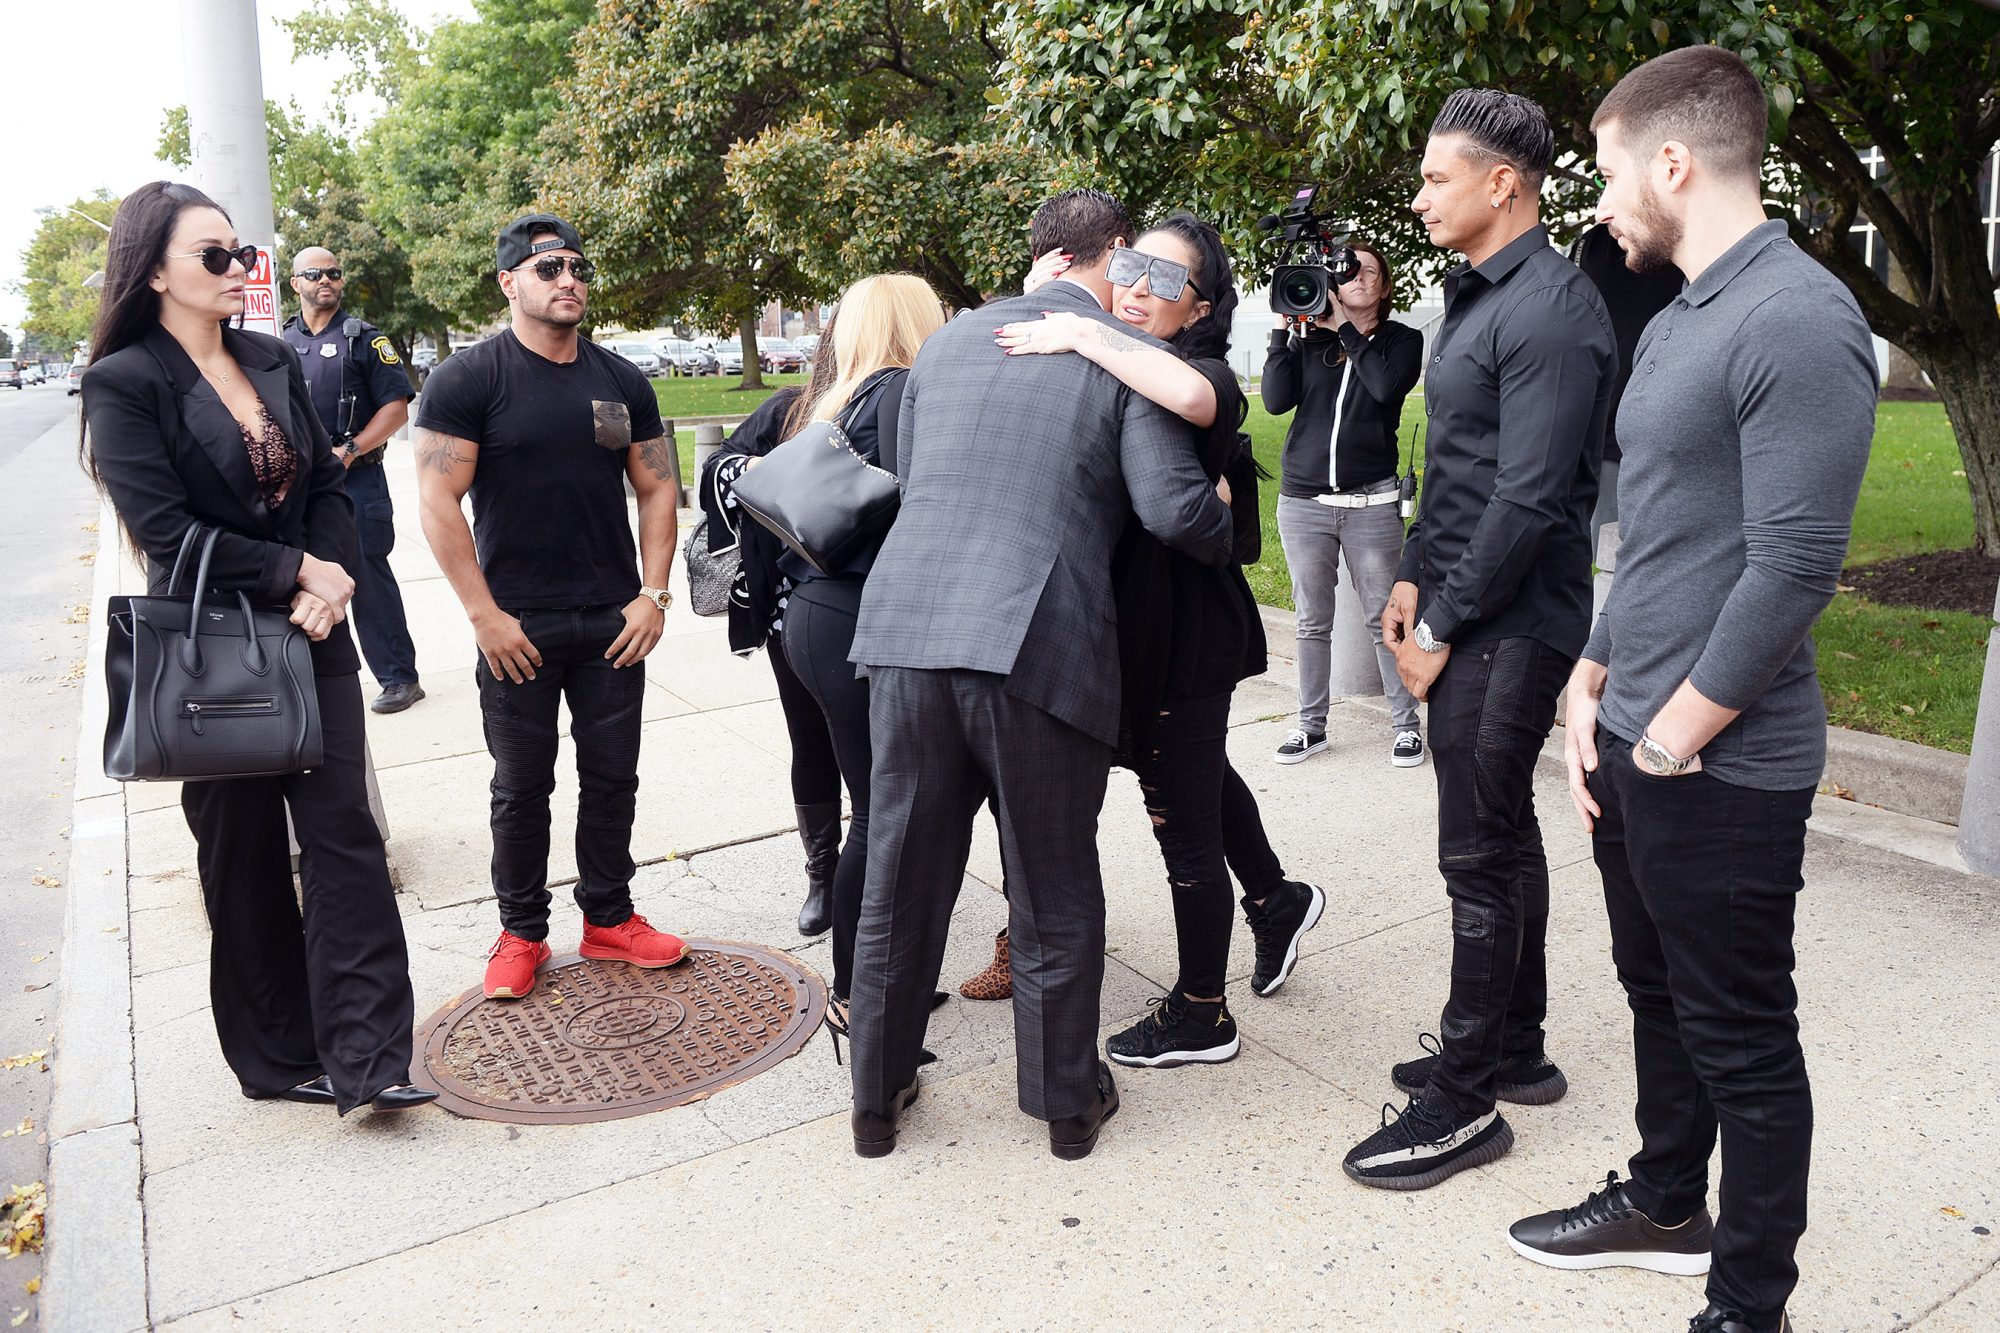 (Jersey Shore Members huging Mike (The Situation) Sorrentino photogaphed arriving at Newwark Nj court were he is to be sentenced for tax evasion